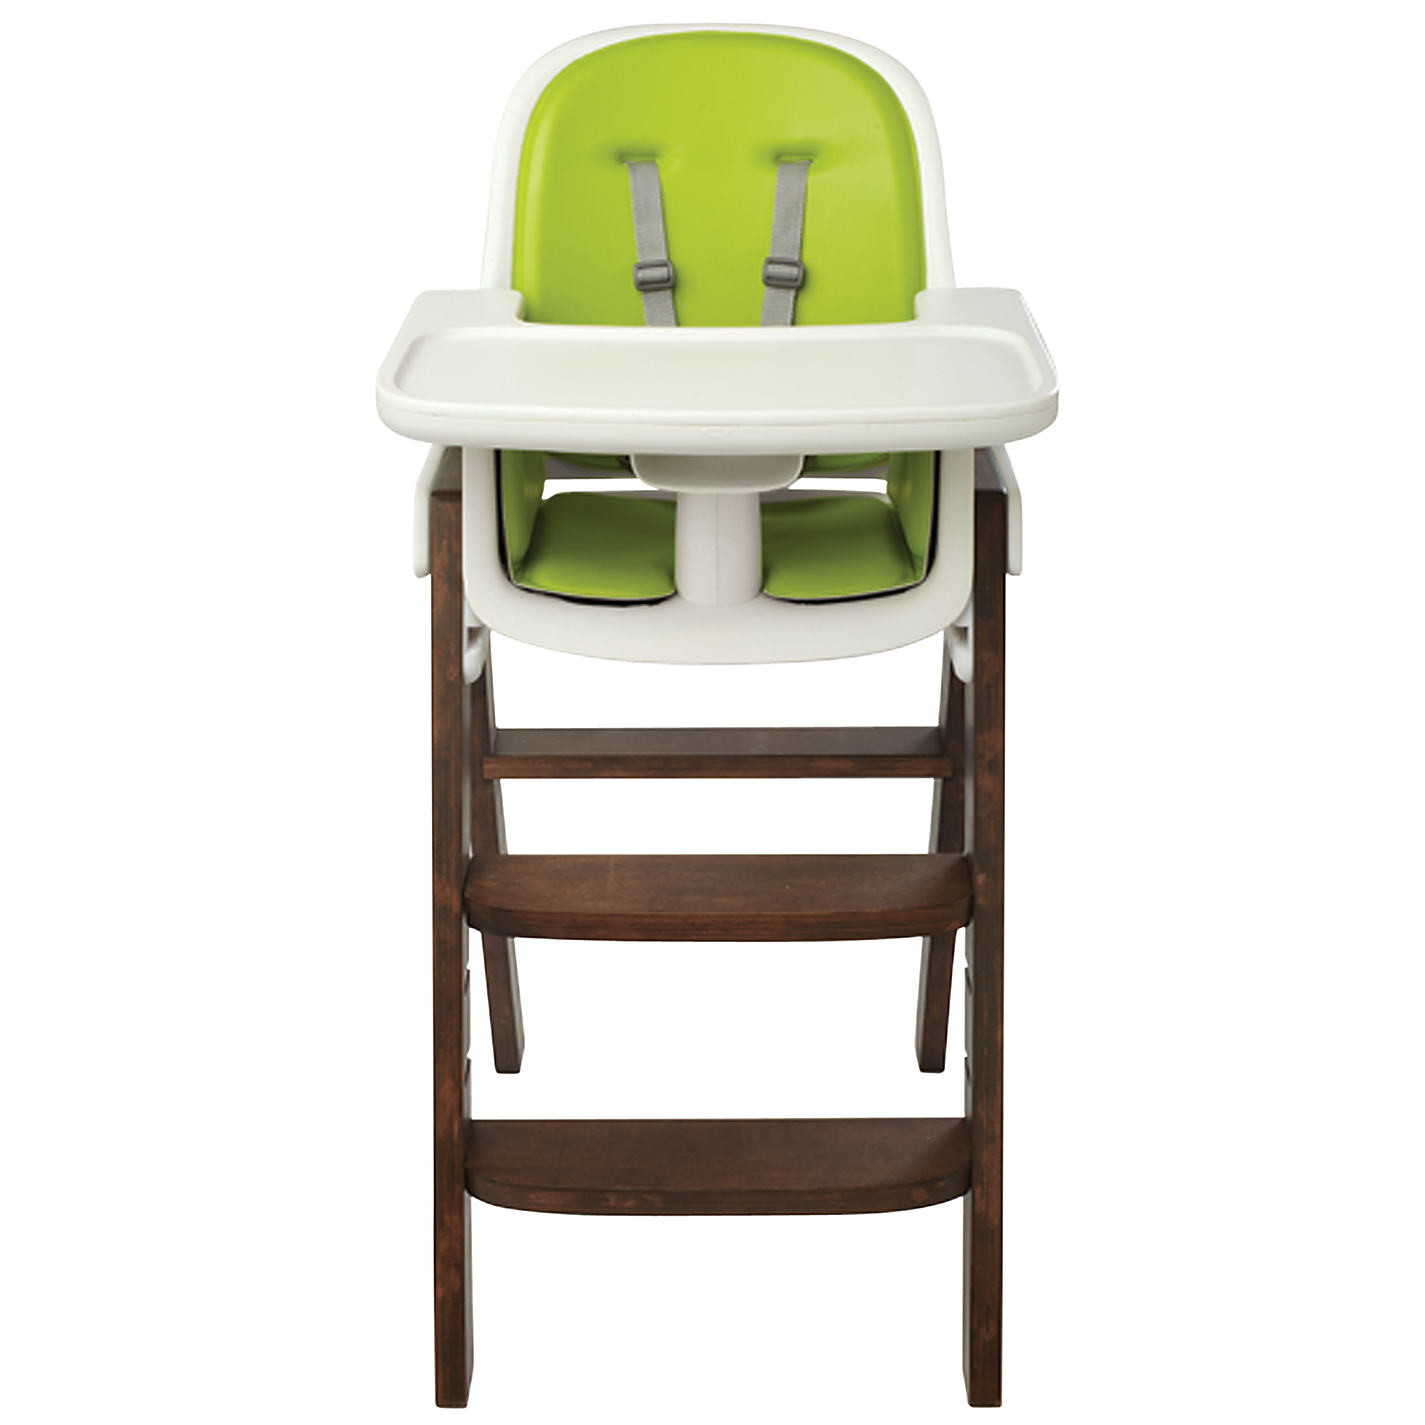 buy oxo tot sprout highchair greenwalnut  john lewis - buy oxo tot sprout highchair greenwalnut online at johnlewiscom